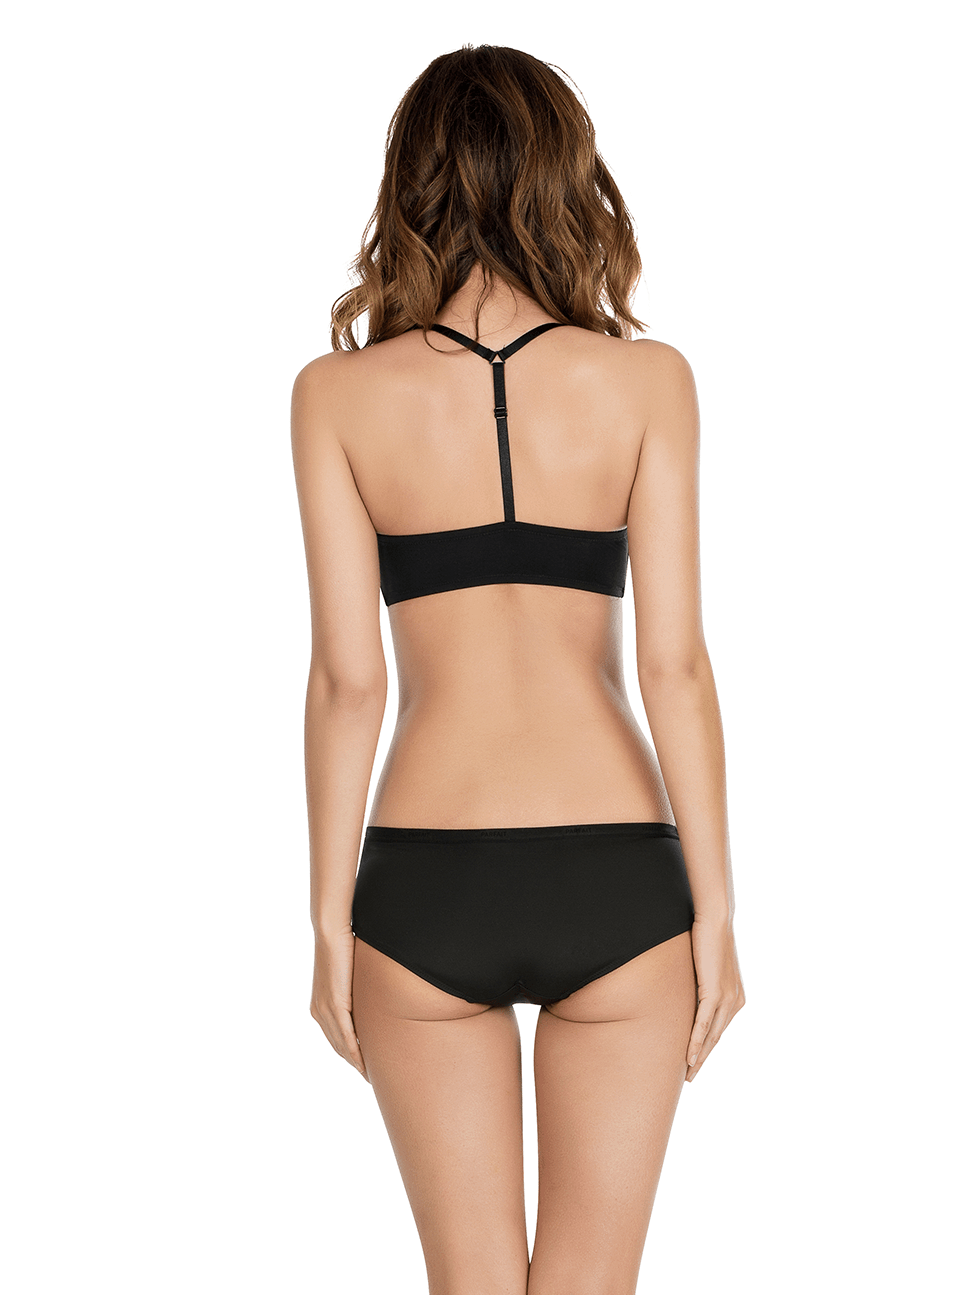 Lynn YBackFrontClosureBraP13122 HipsterP13015 Black Back - Lynn Y-back Front Closure Bra - Black - P13122